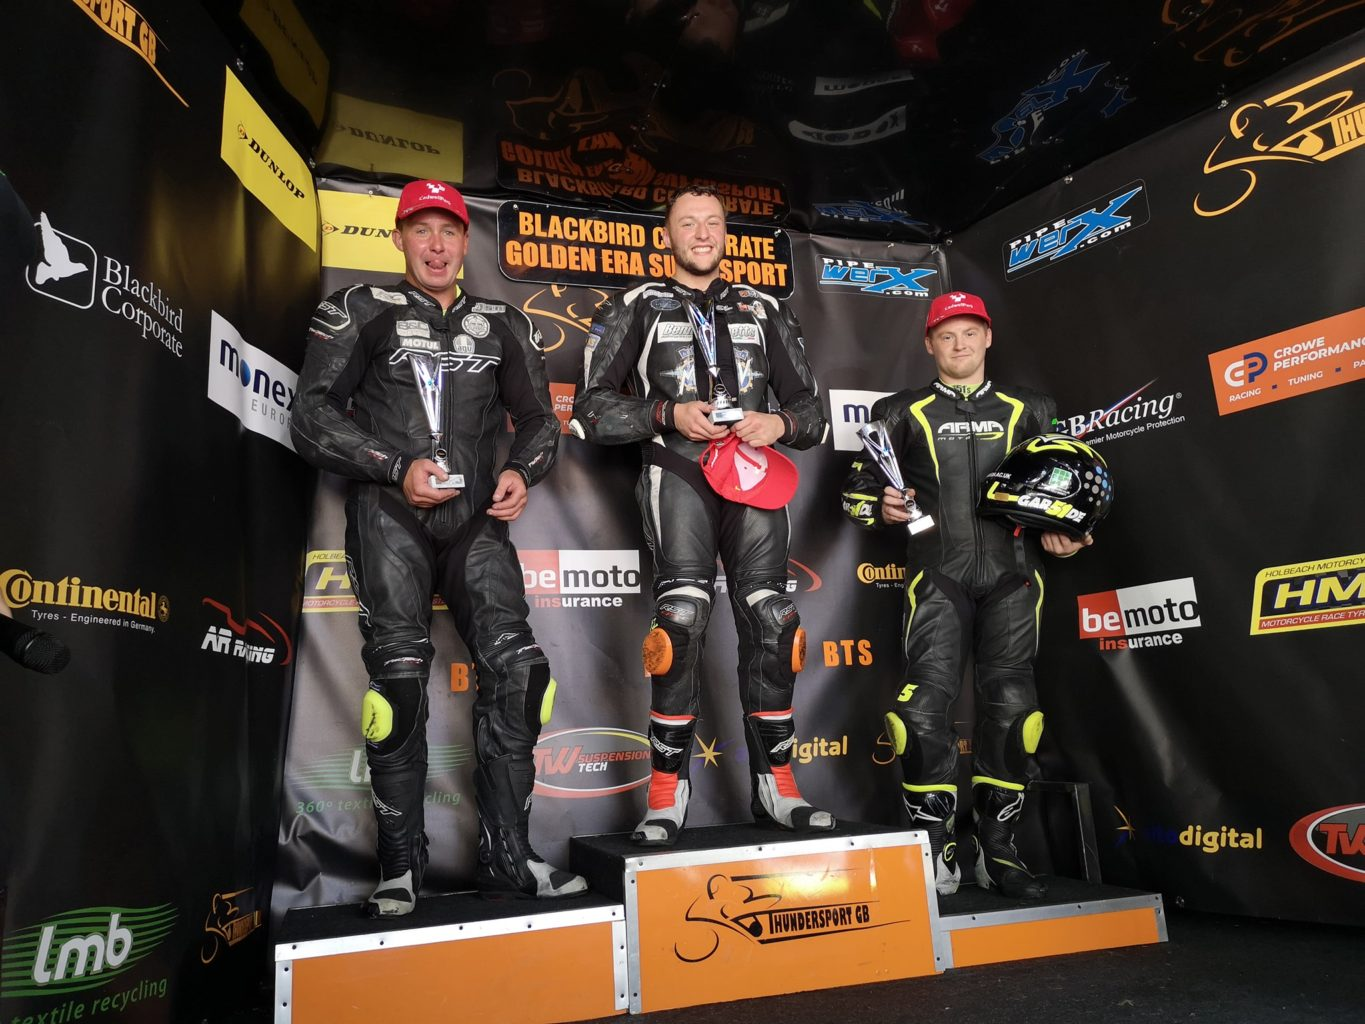 Wheelan with another Steelsport win ahead of title protagonists Edwards and Garside...